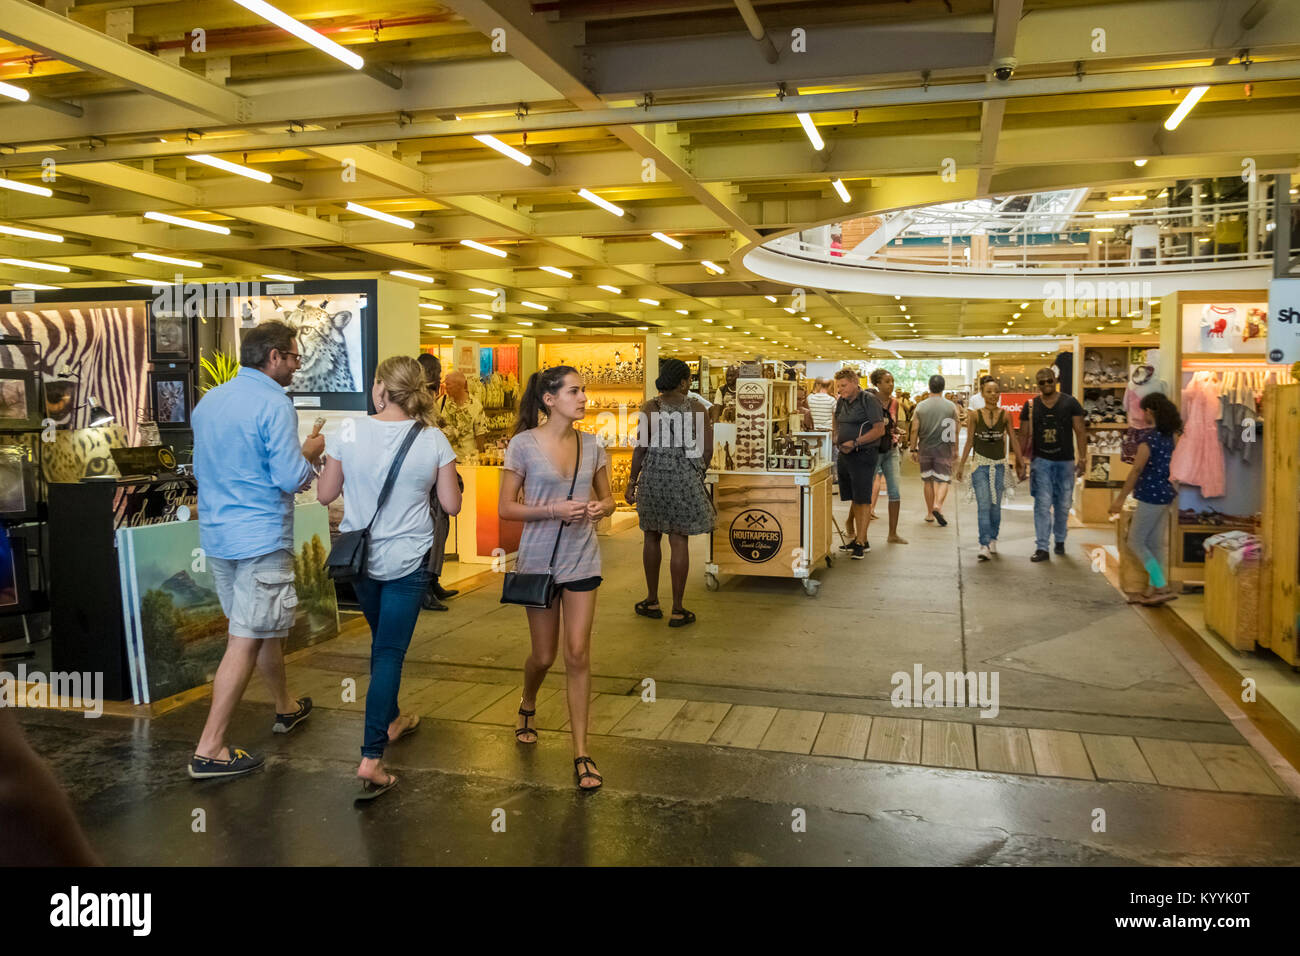 People shopping at The Watershed, V&A Waterfront, Cape Town, South Africa - Stock Image